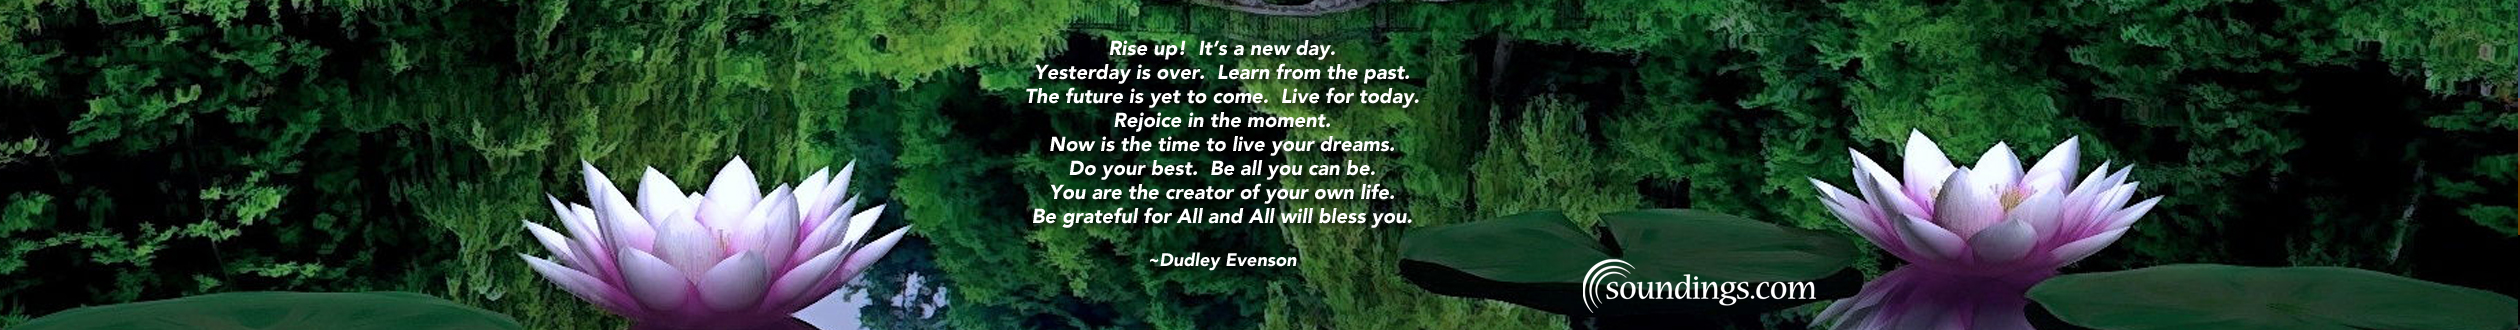 dudley-quote-slide_edited-3